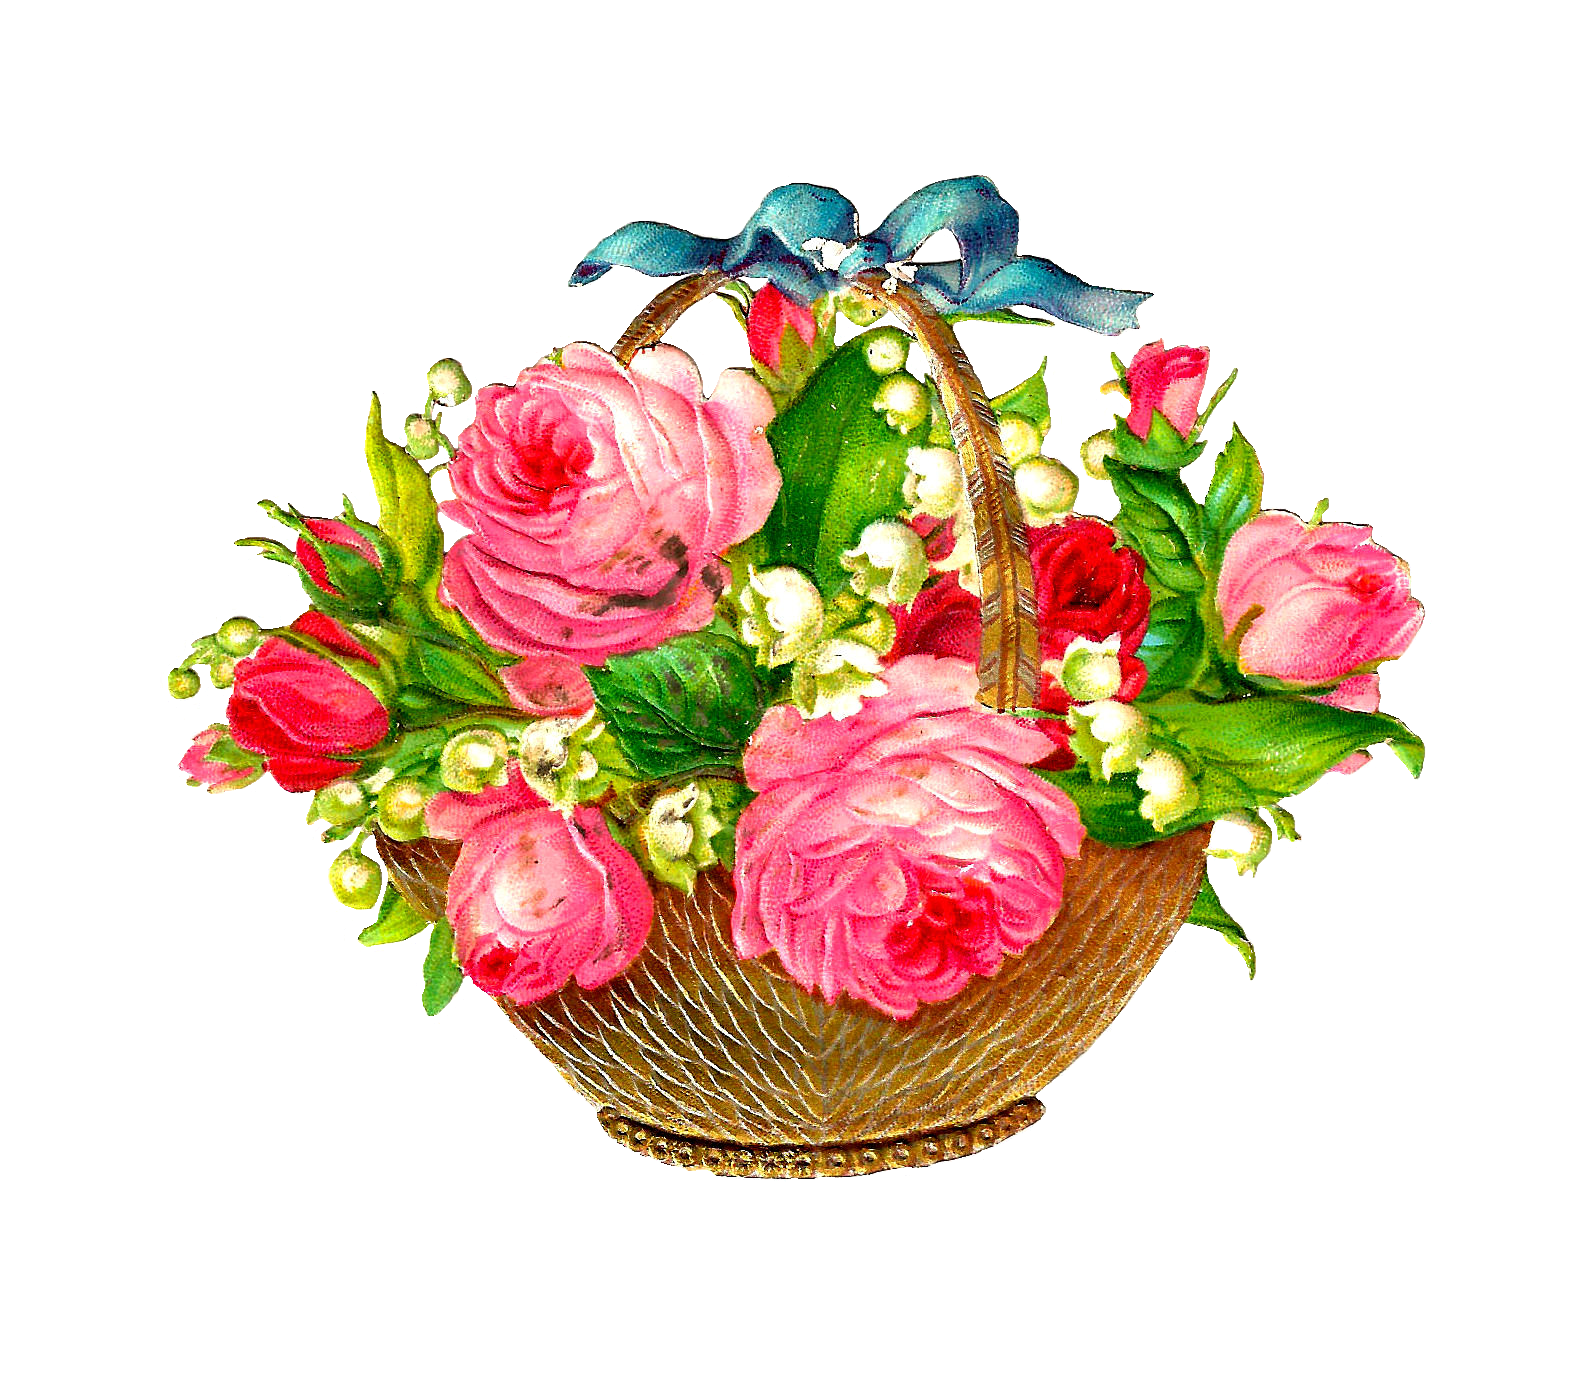 Clipart roses bucket. Bouquet of flowers png